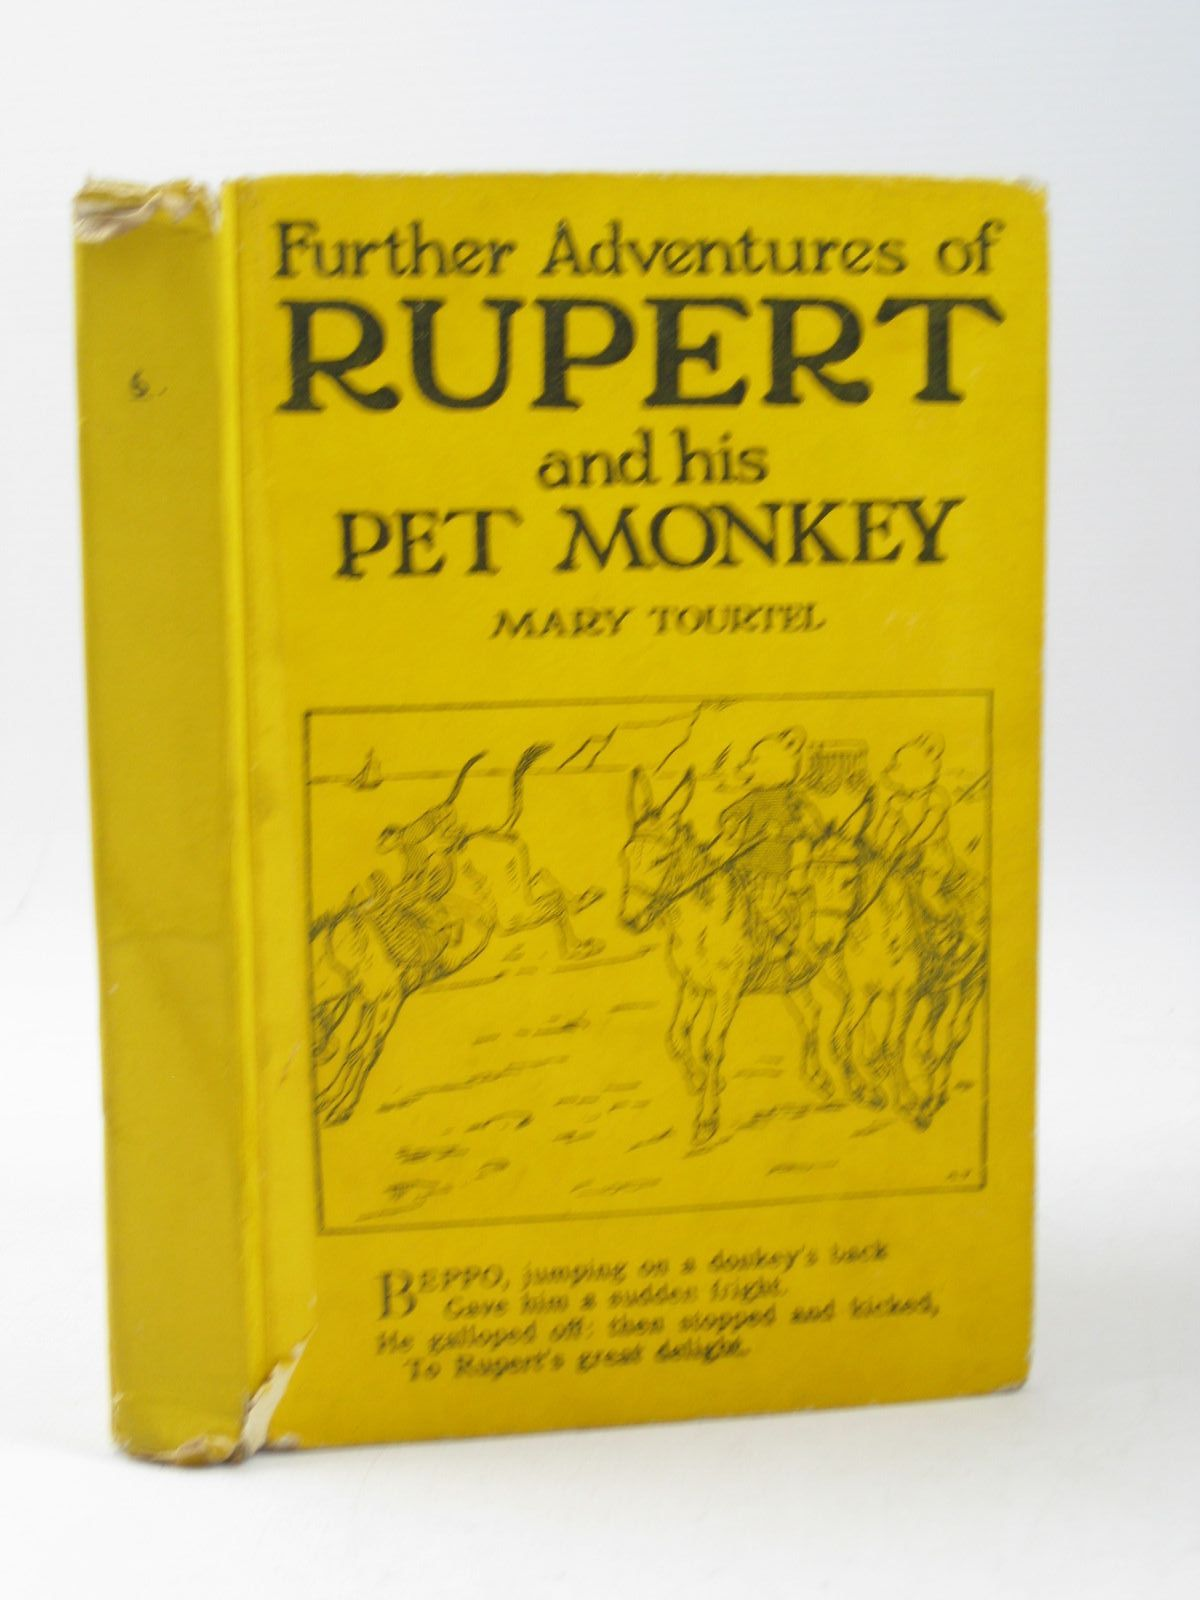 Photo of FURTHER ADVENTURES OF RUPERT AND HIS PET MONKEY - RUPERT LITTLE BEAR LIBRARY No. 6 written by Tourtel, Mary illustrated by Tourtel, Mary published by Sampson Low, Marston & Co. Ltd. (STOCK CODE: 1503913)  for sale by Stella & Rose's Books